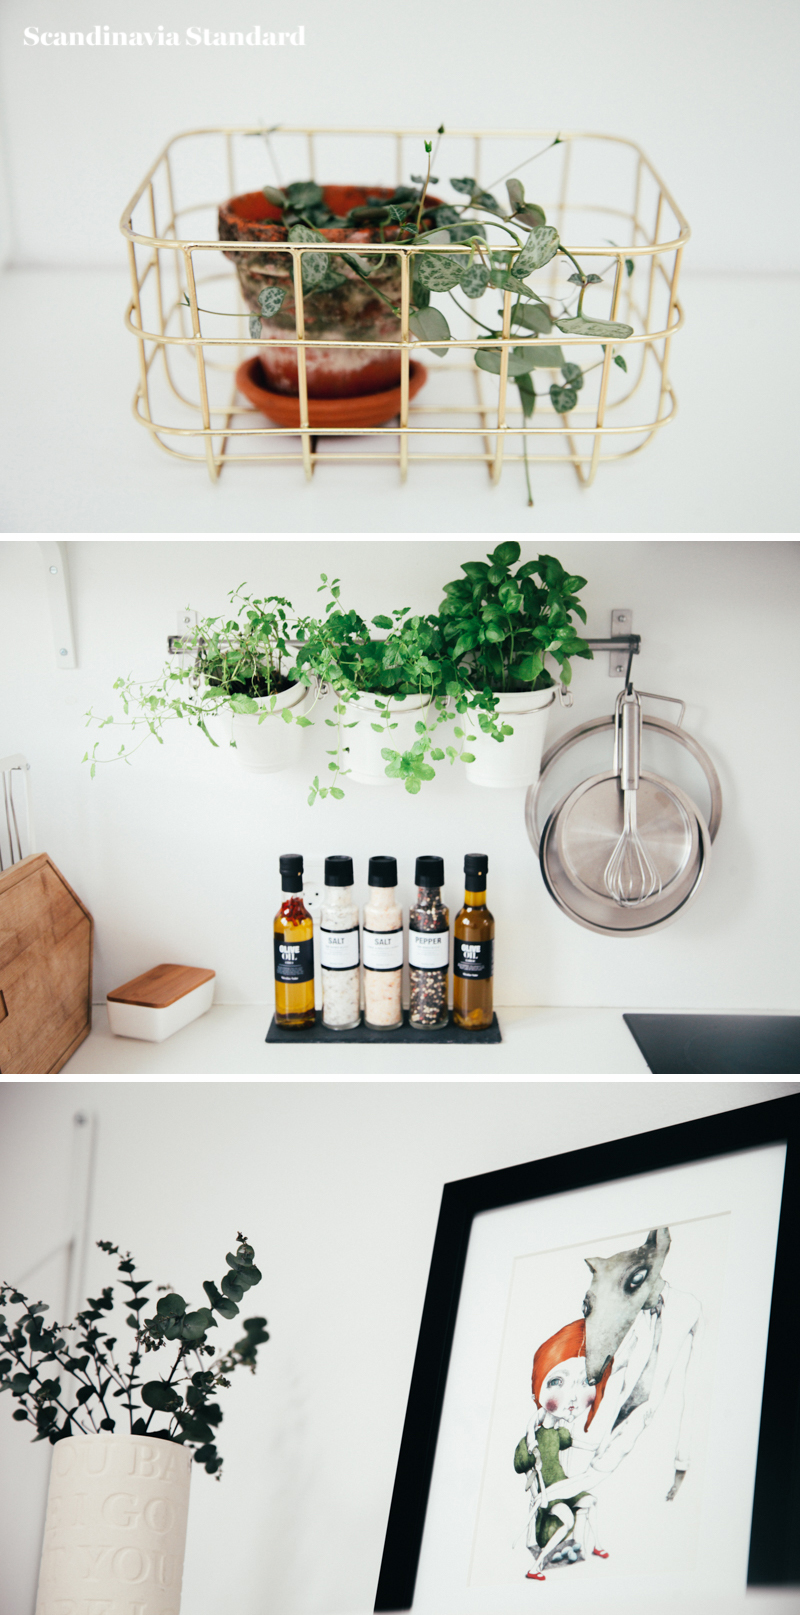 The White Room - Christina & Ulrich's Østerbro Apartment - Interiors - Collage 3 | Scandinavia Standard